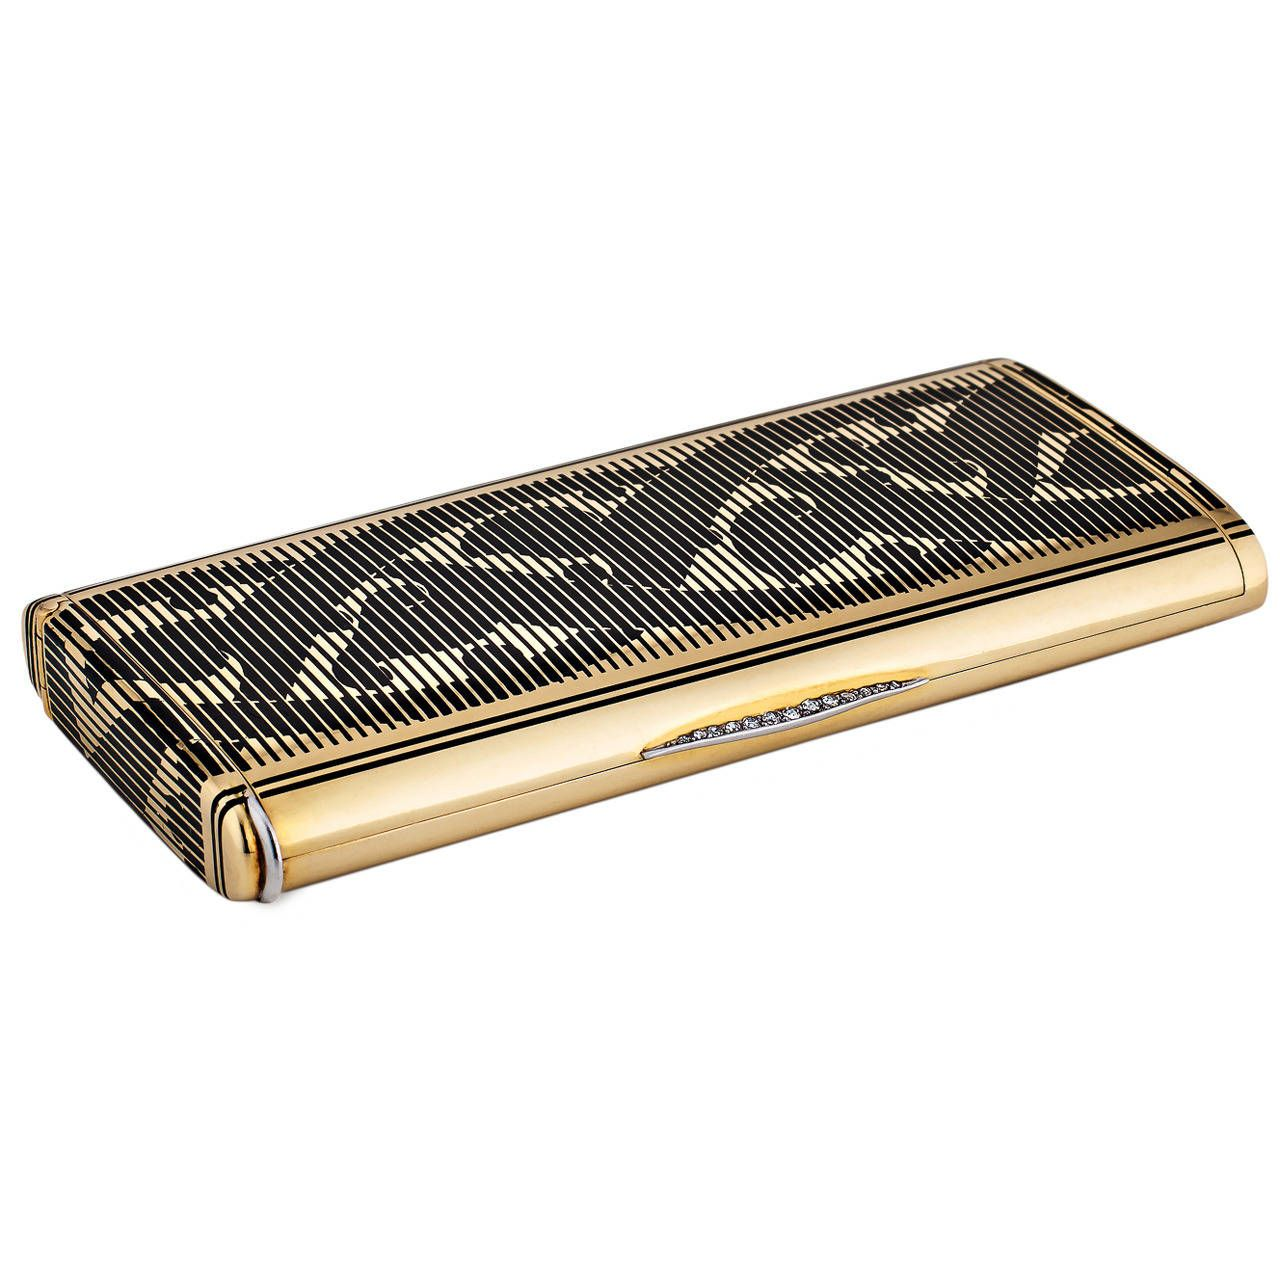 Cartier Art Deco Diamond Gold Necessaire | From a unique collection of vintage boxes and cases at https://www.1stdibs.com/jewelry/objets-dart-vertu/boxes-cases/